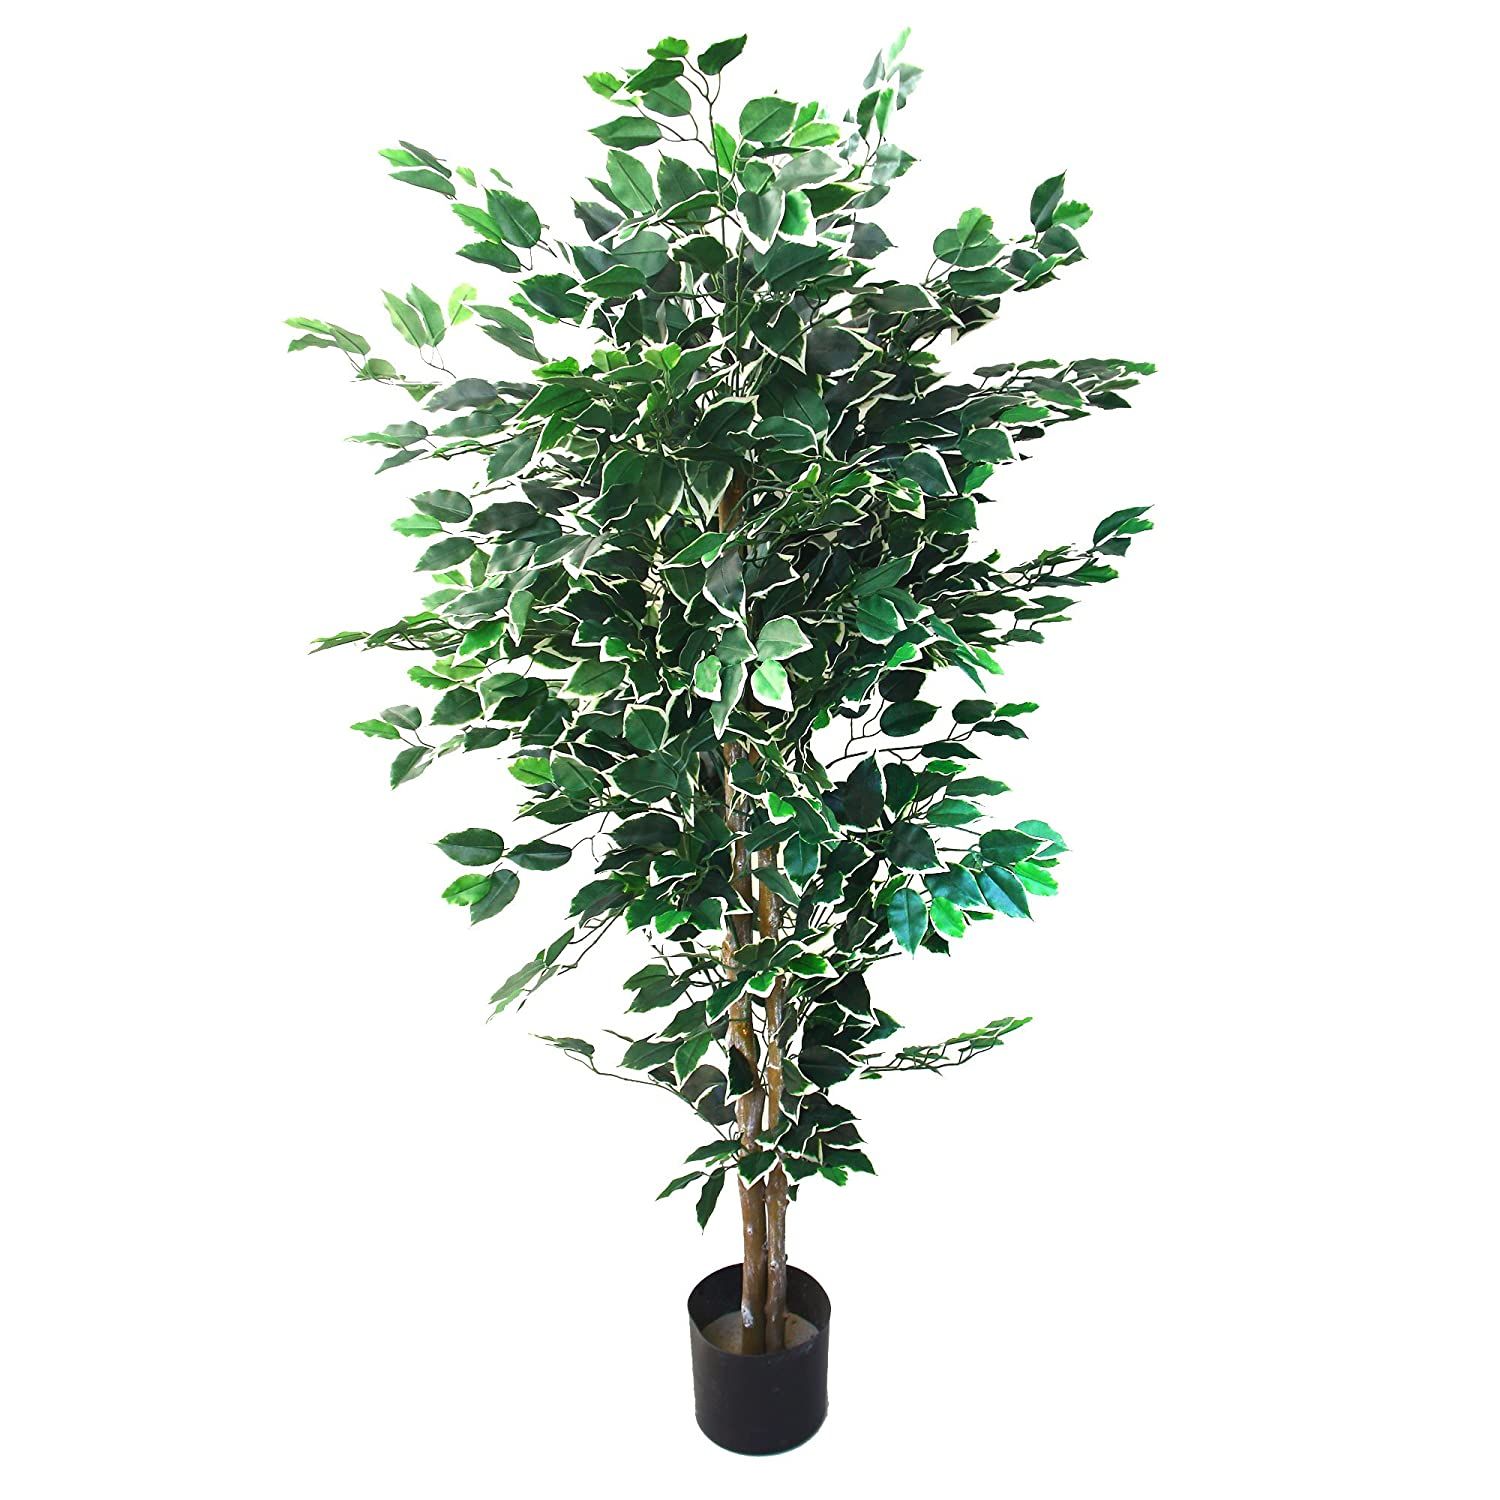 Artificial Ficus Tree With Variegated Leaves And Natural Trunk, Beautiful  Fake Plant For Indoor